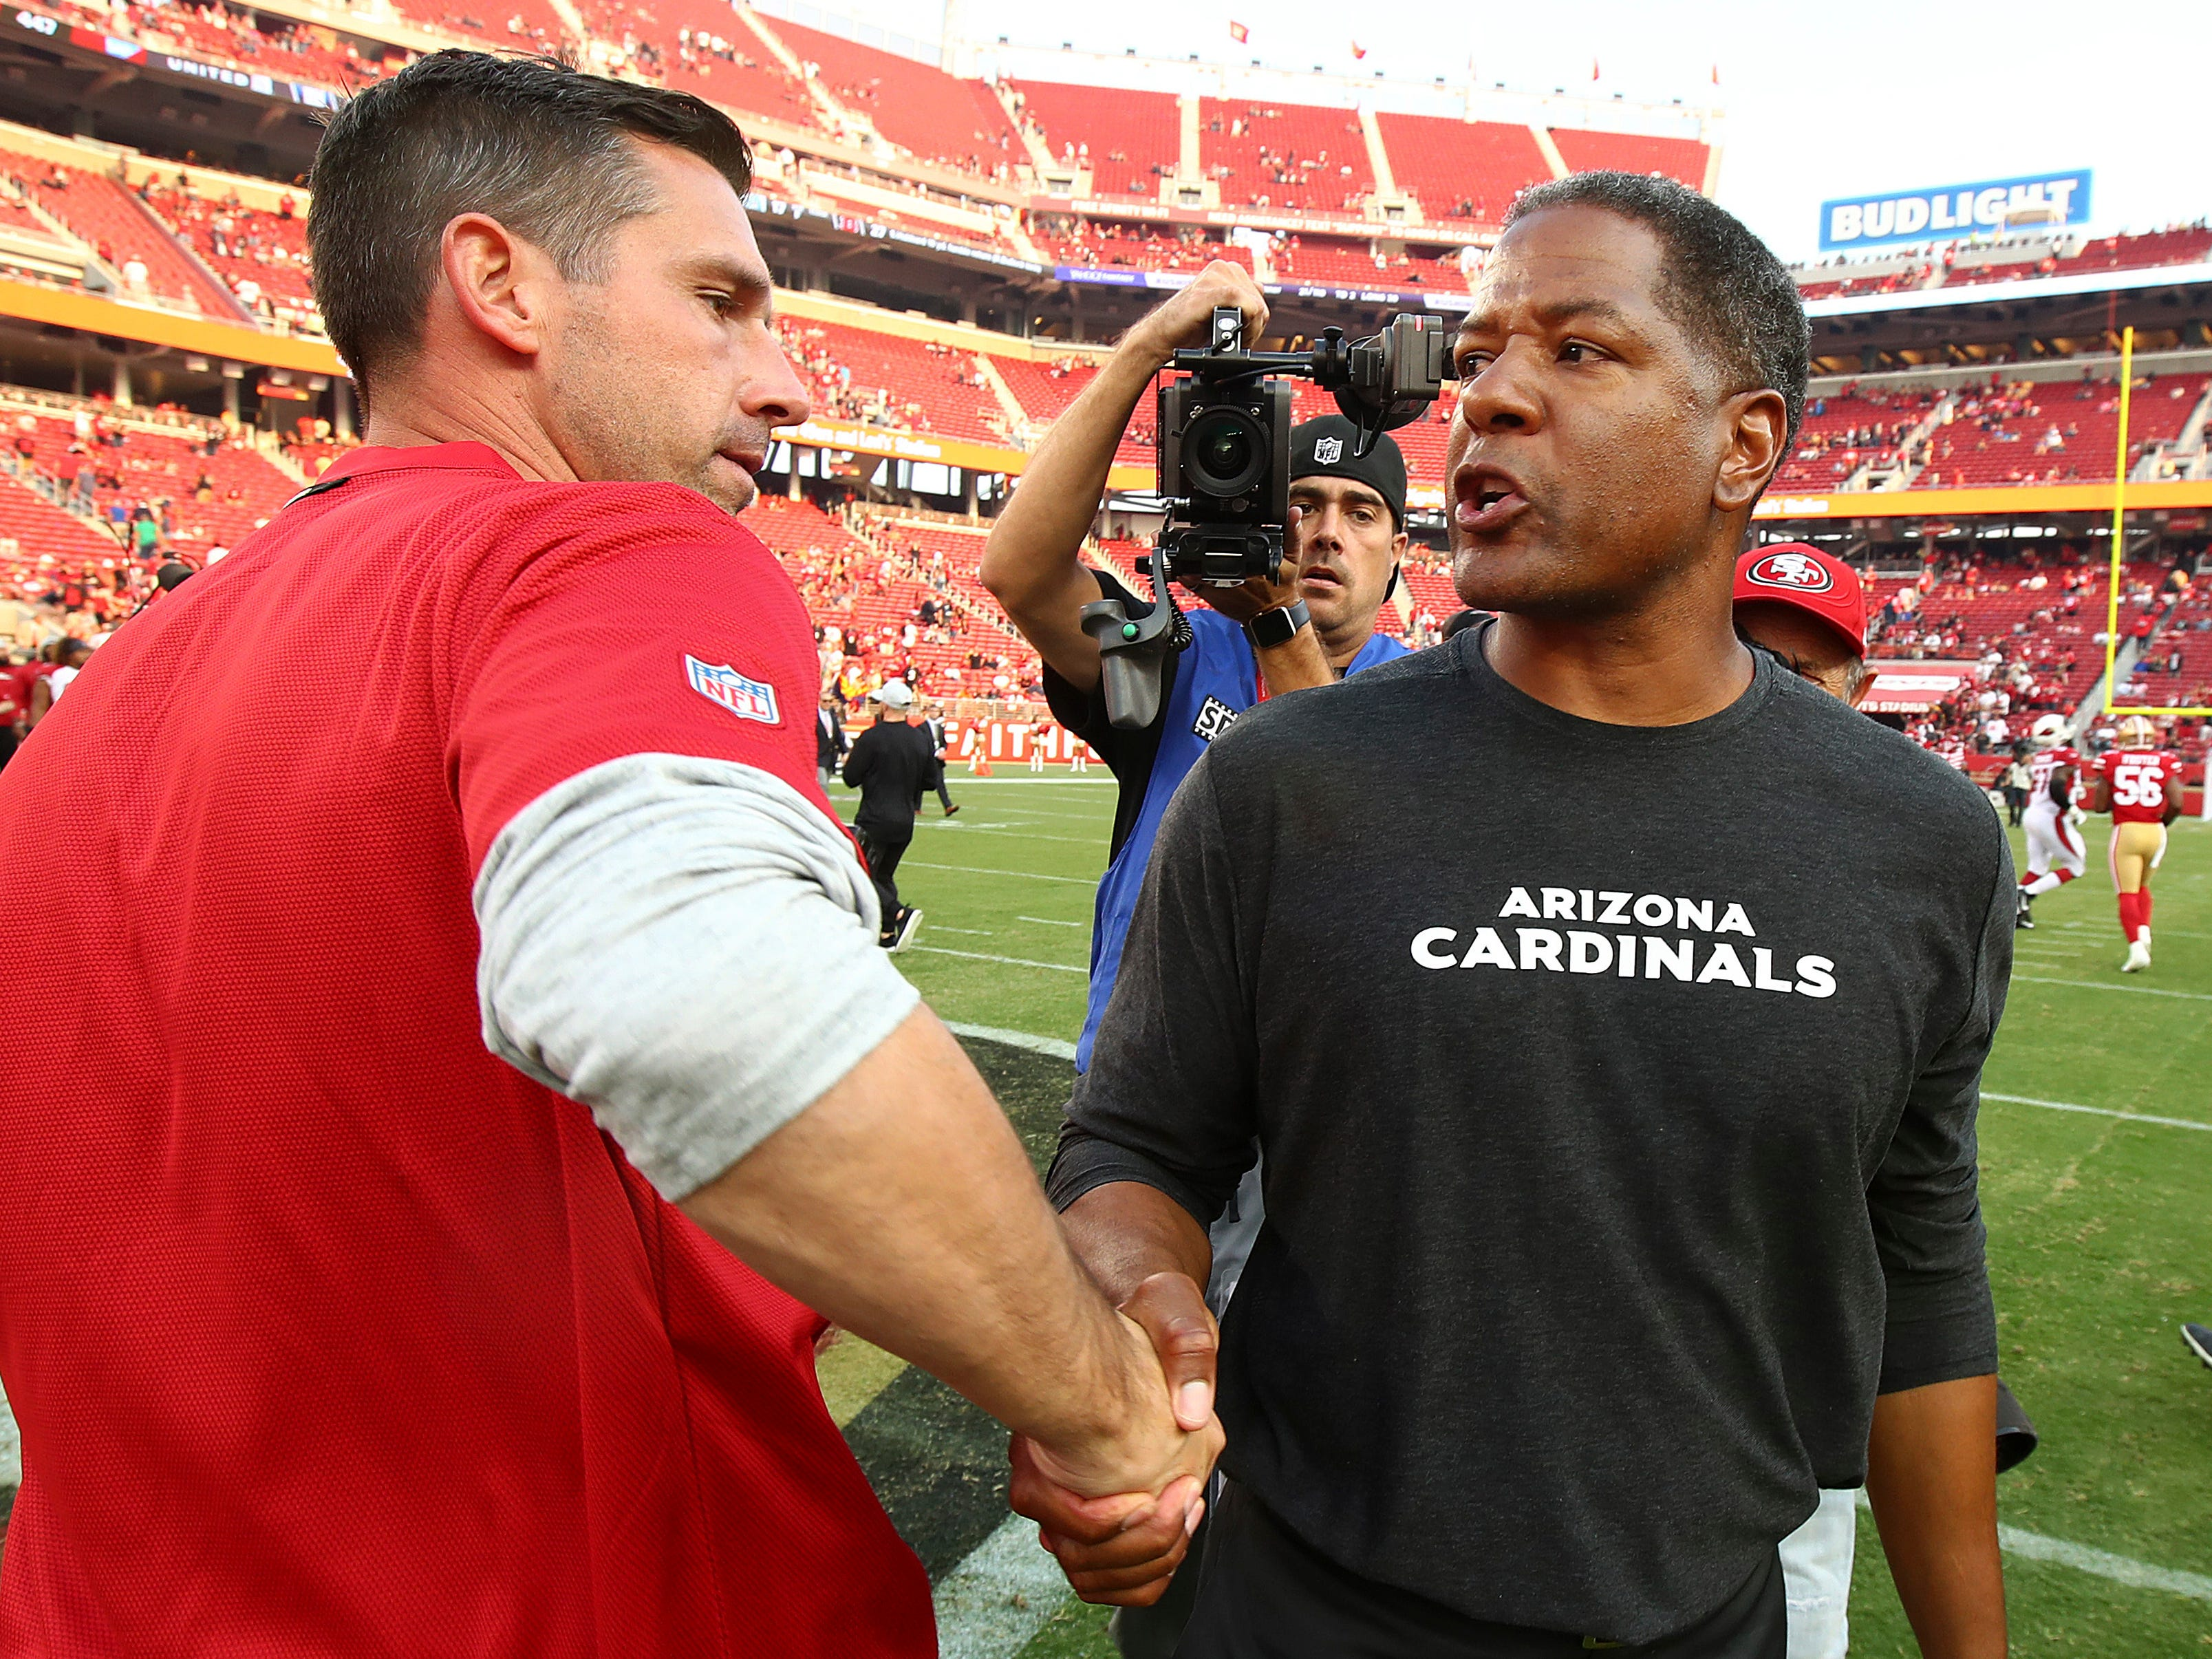 San Francisco 49ers head coach Kyle Shanahan, left, shakes hands with Arizona Cardinals head coach Steve Wilks after an NFL football game in Santa Clara, Calif., Sunday, Oct. 7, 2018.